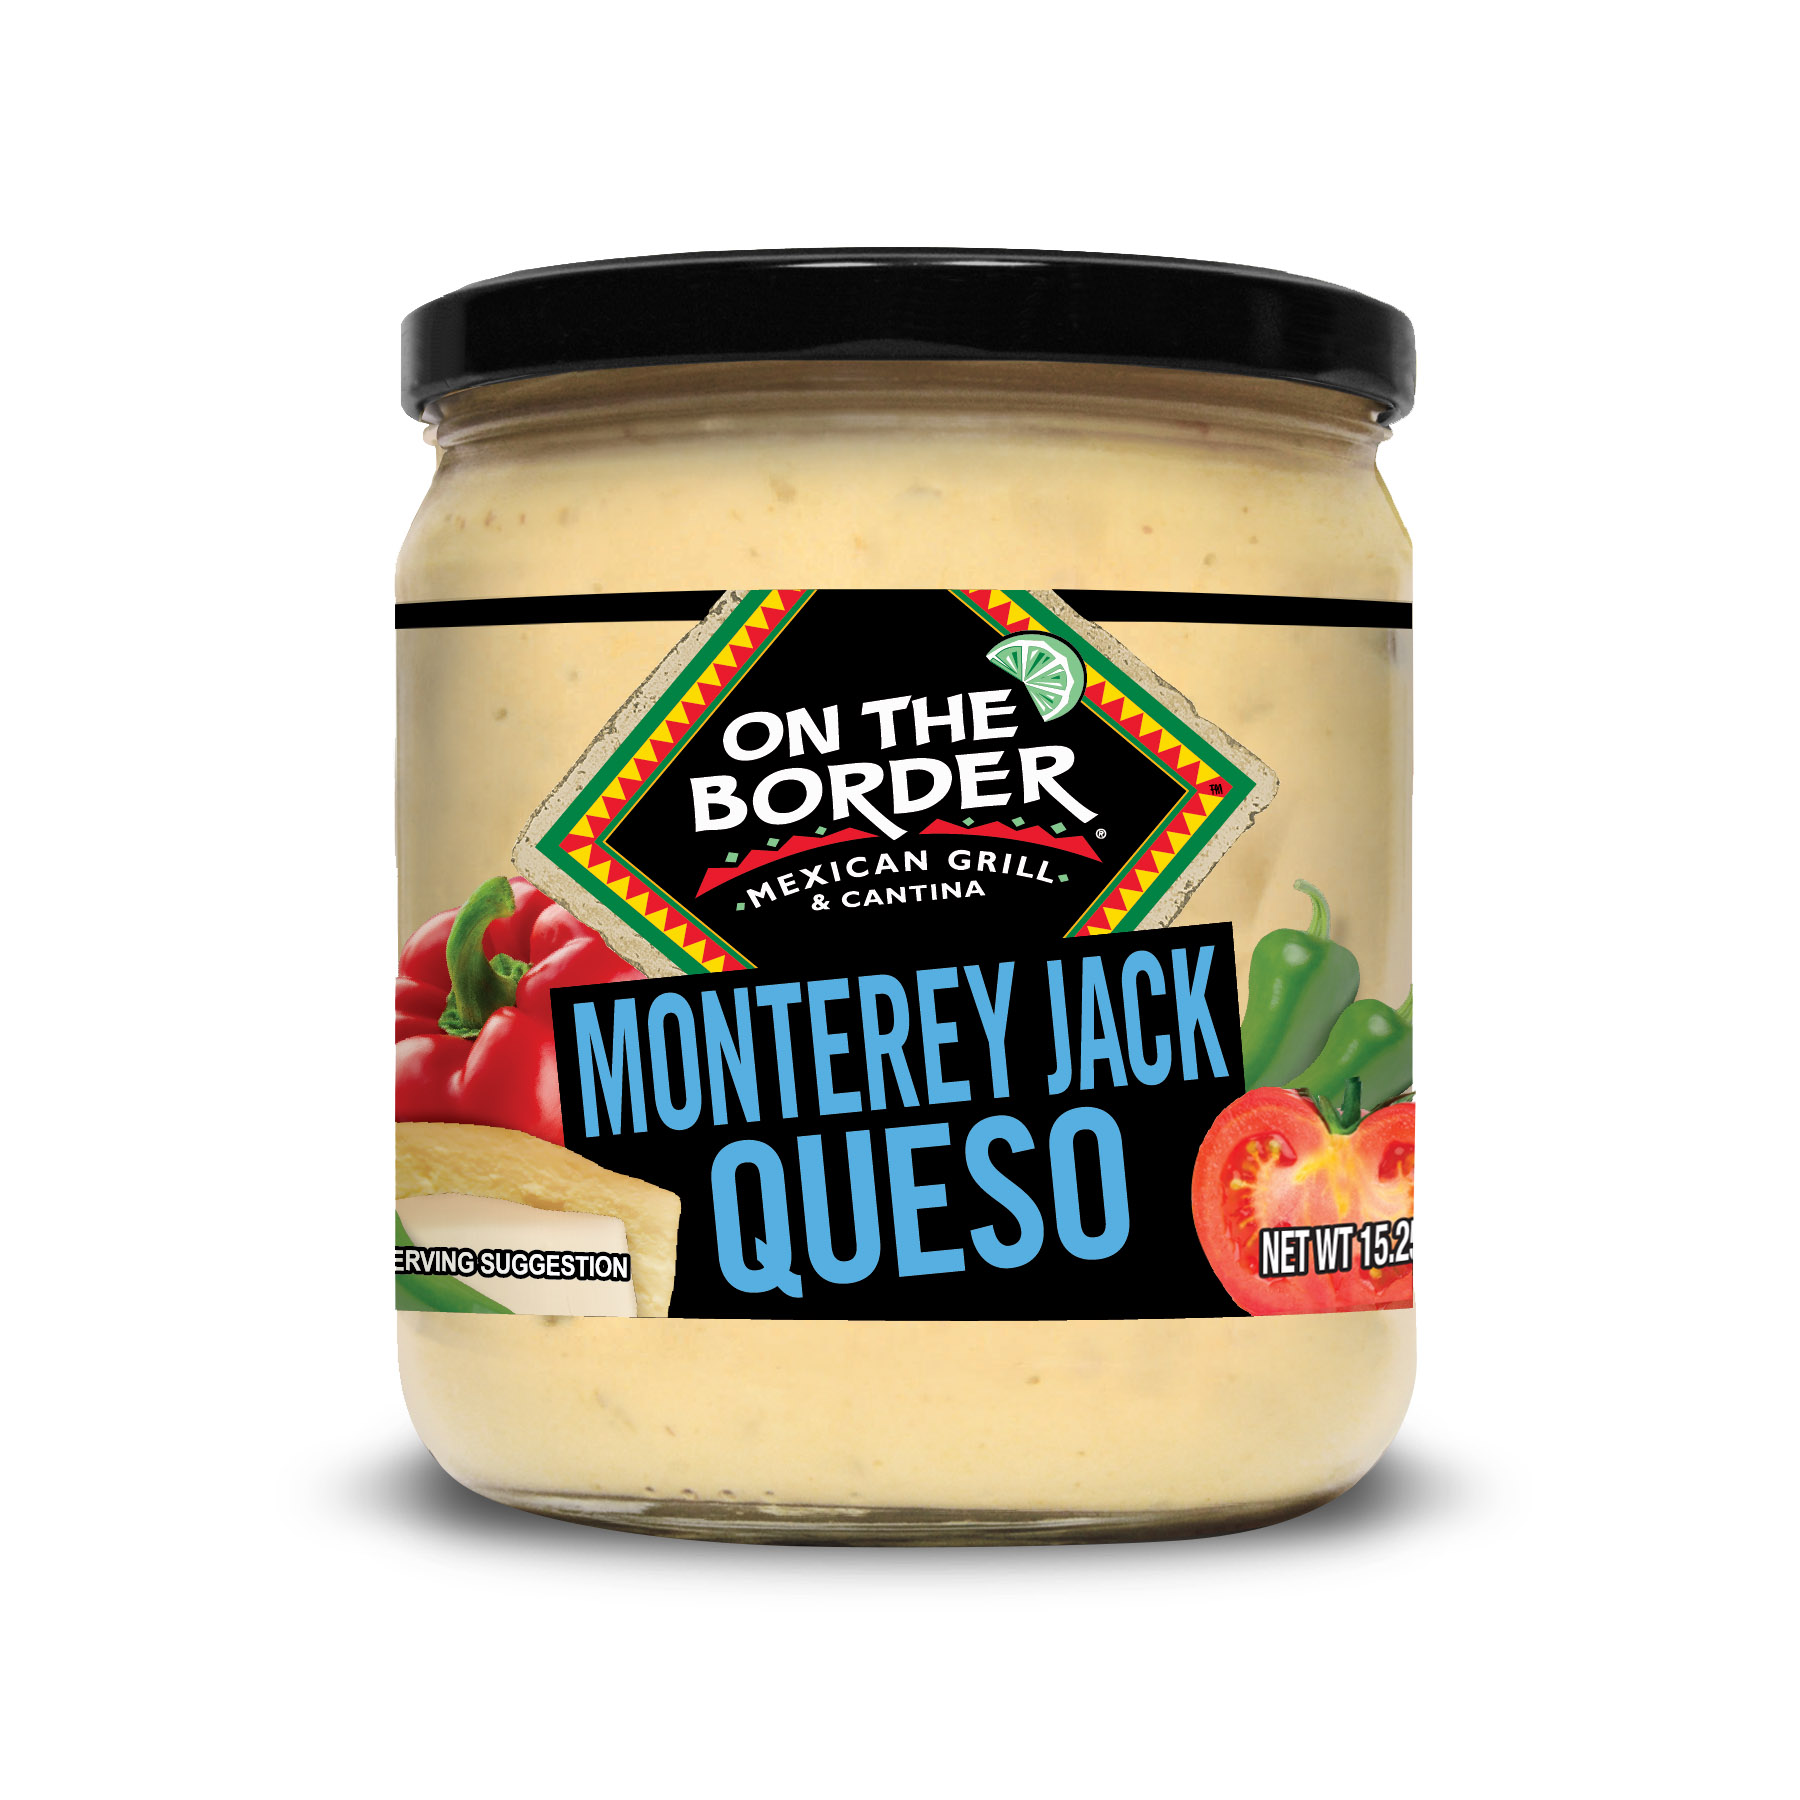 On The Border Mexican Grill & Cantina Monterey Jack Queso, 15.25 Oz.